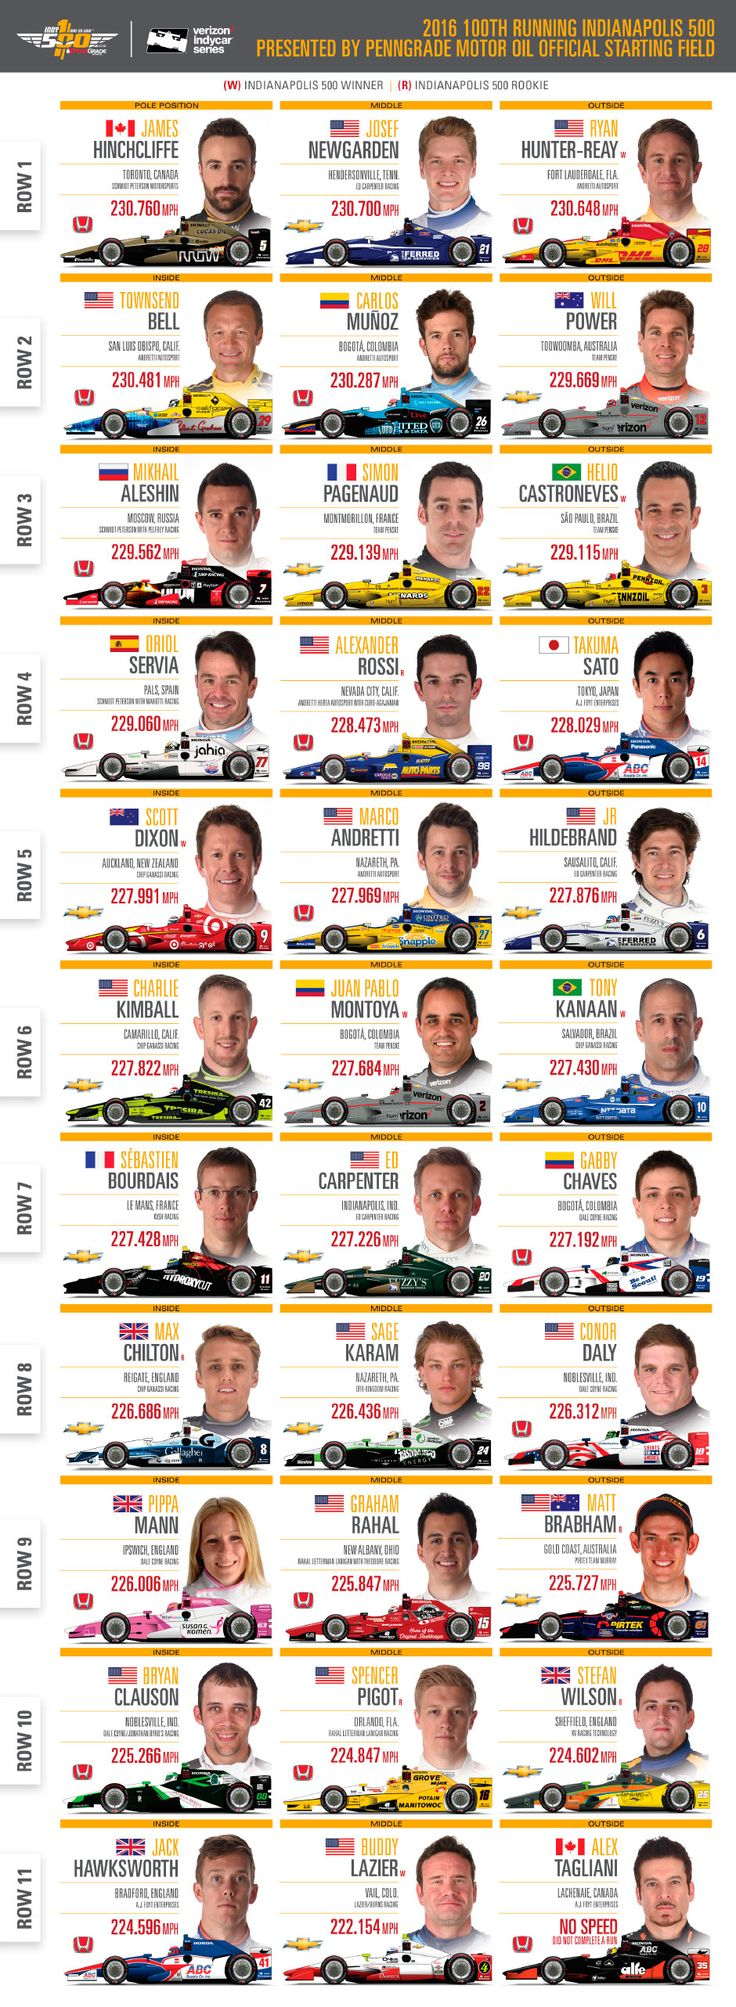 Starting Lineup - 2016 Indianapolis 500